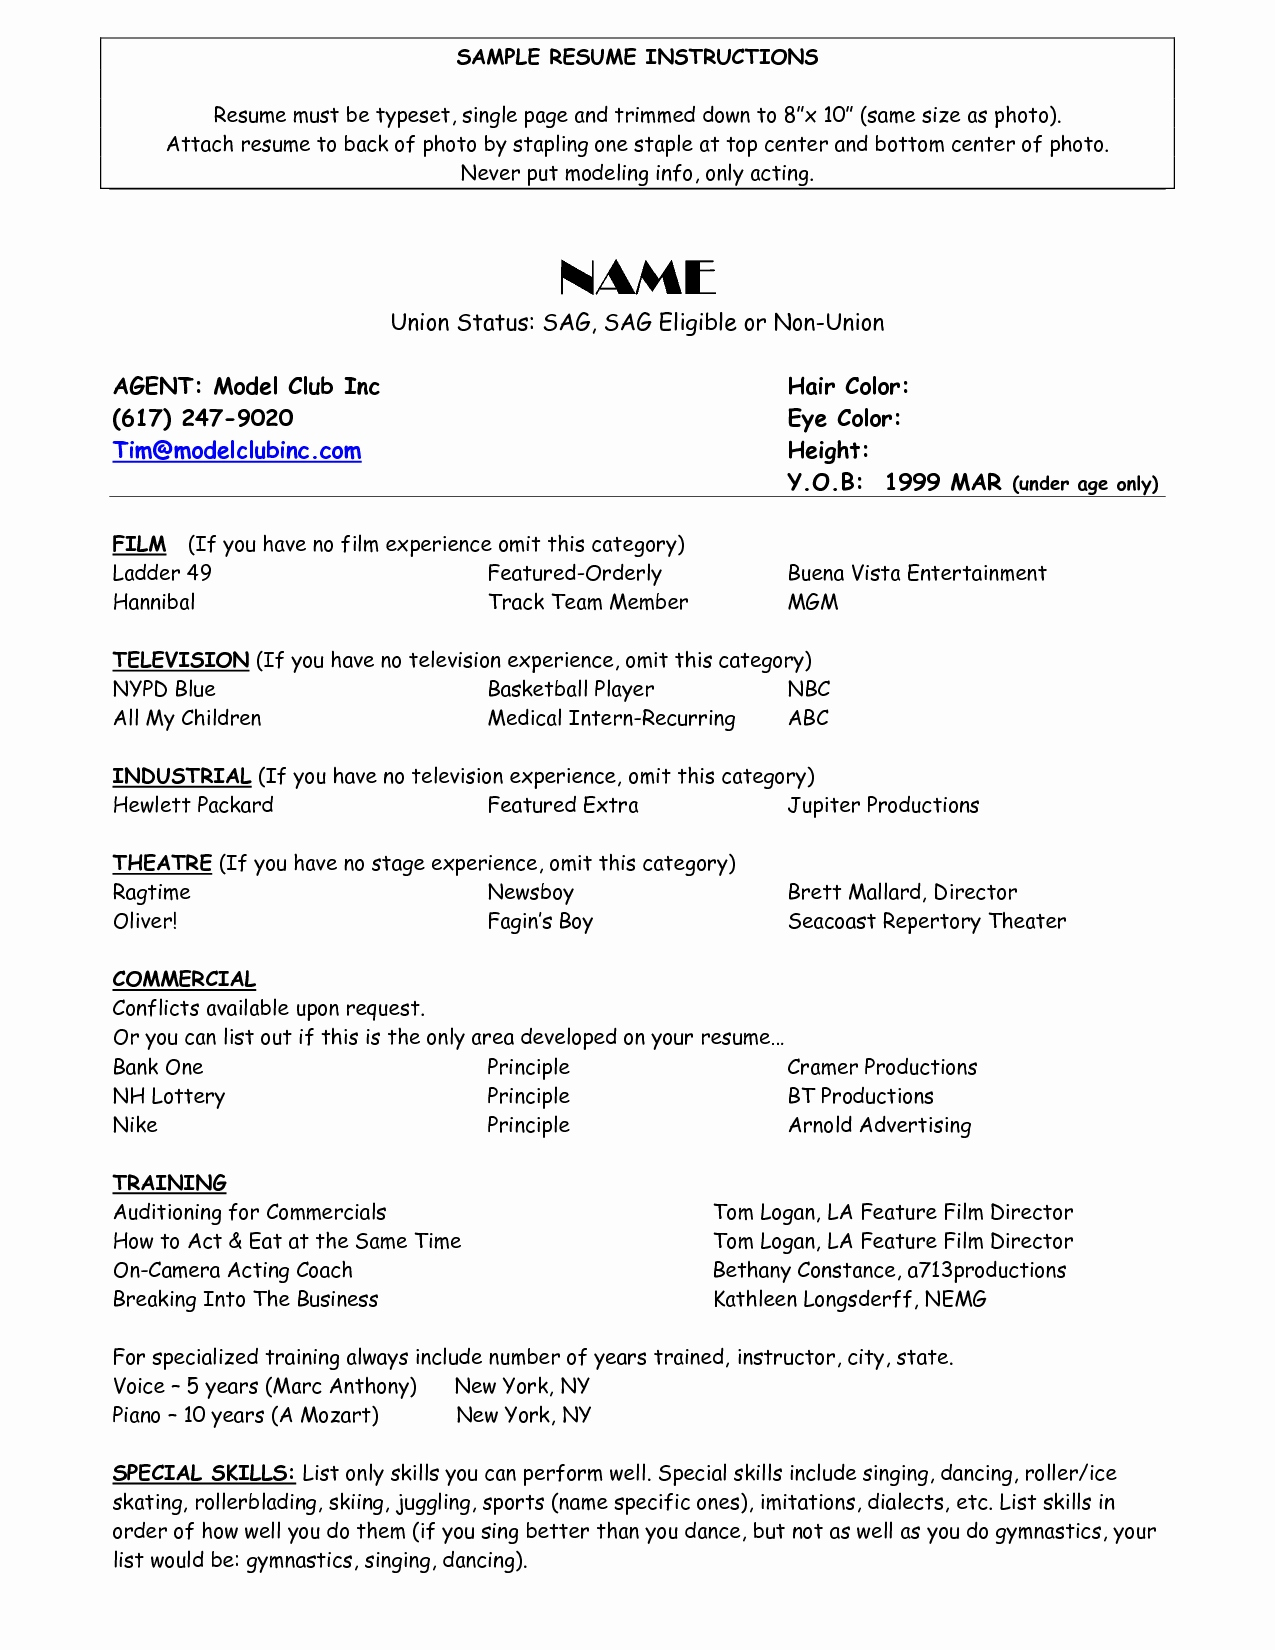 Film Actor Resume Template - Promotional Model Resume Sample Unique Model Resume Template Resume